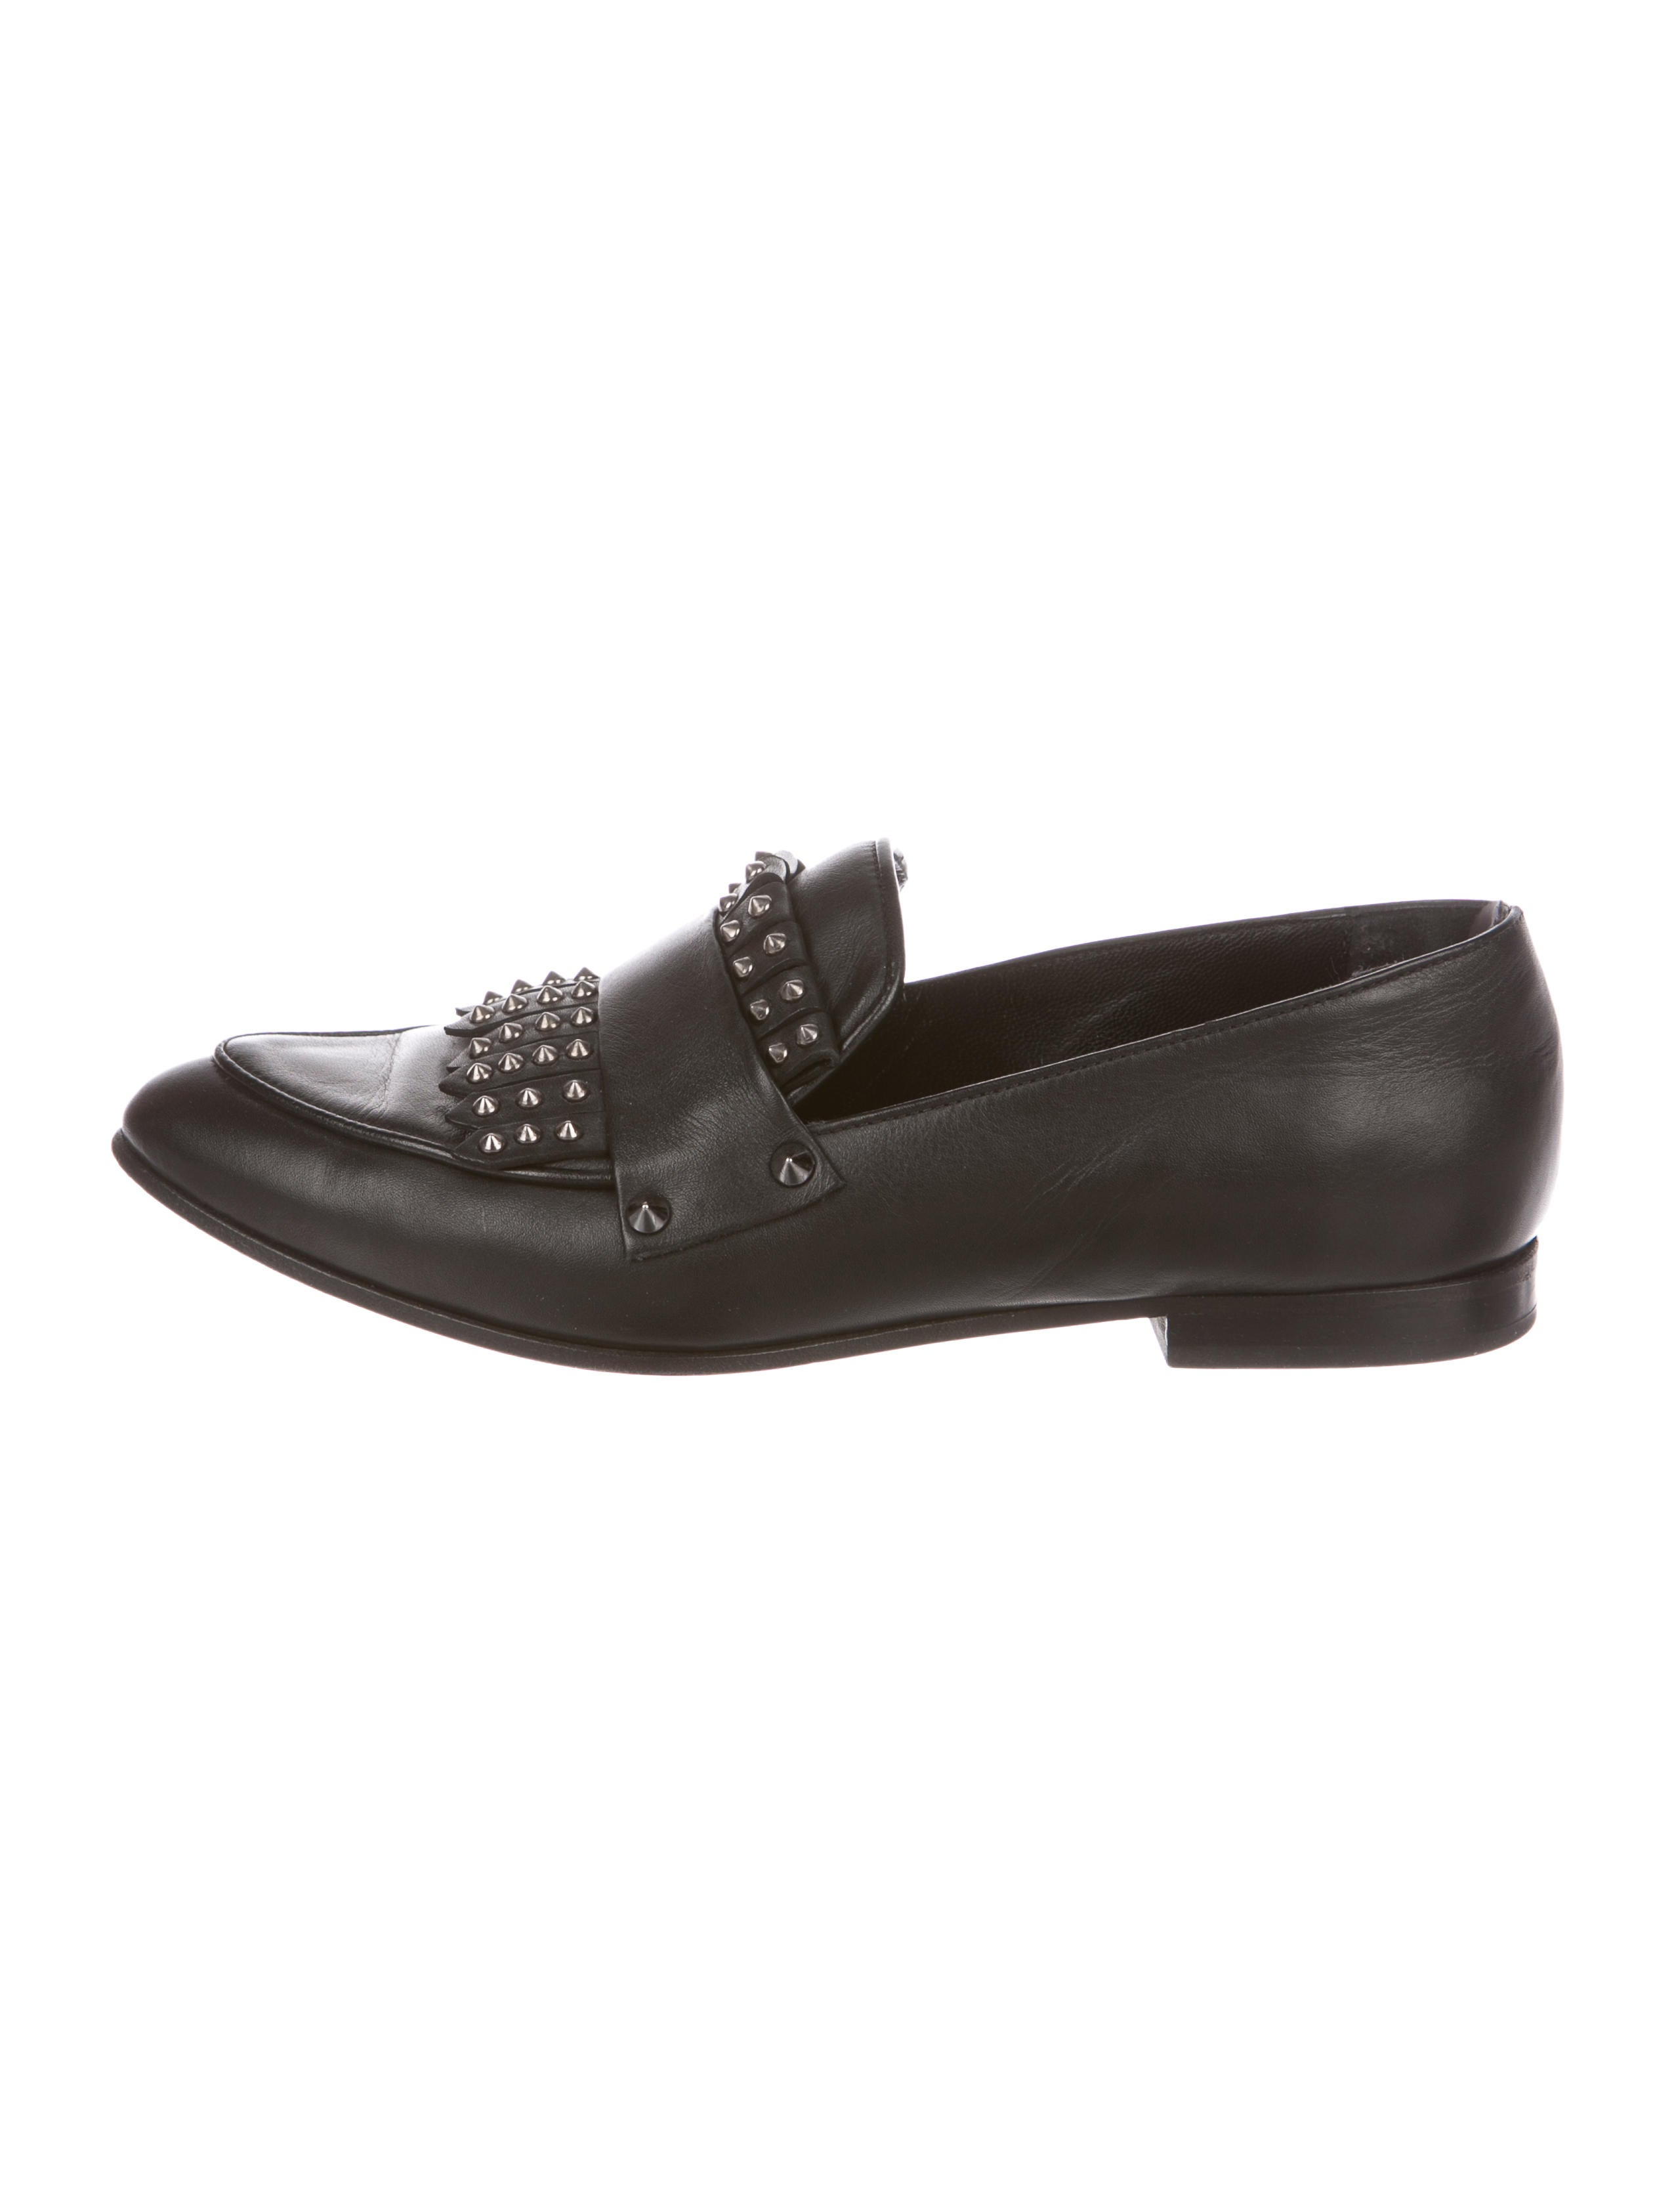 free shipping fashion Style AllSaints Studded Pointed-Toe Loafers outlet where can you find cheap Inexpensive 4a8ATHi